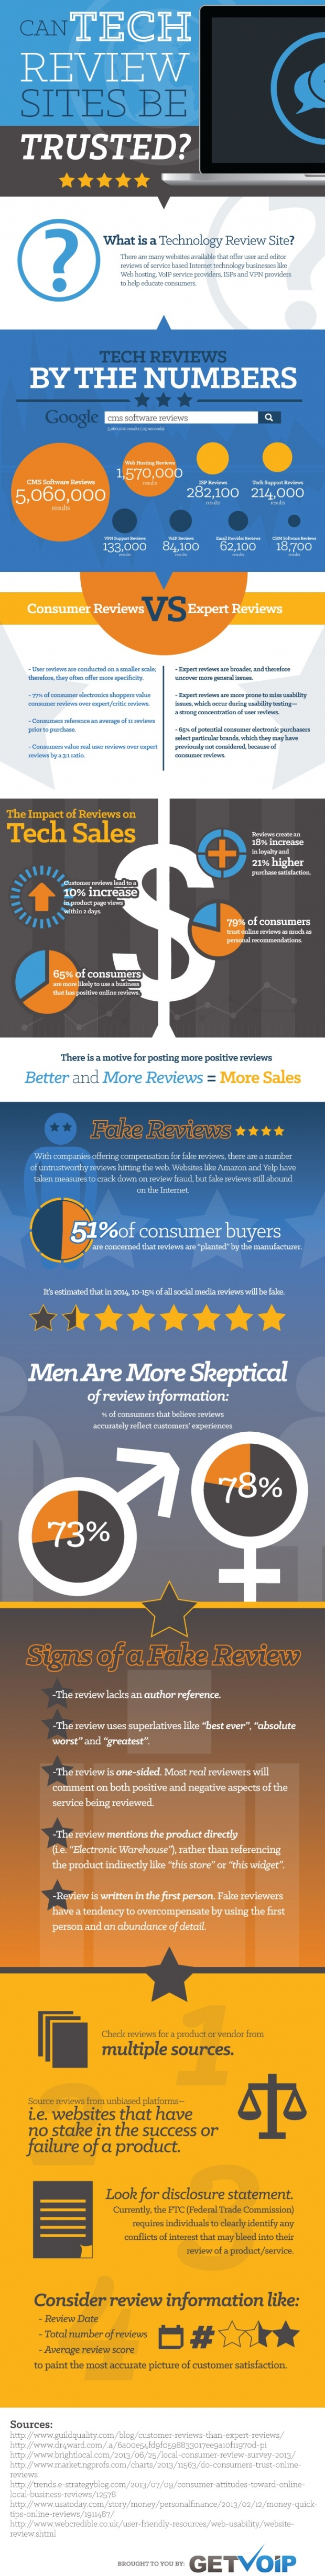 getvoip-infographic-reviews_1